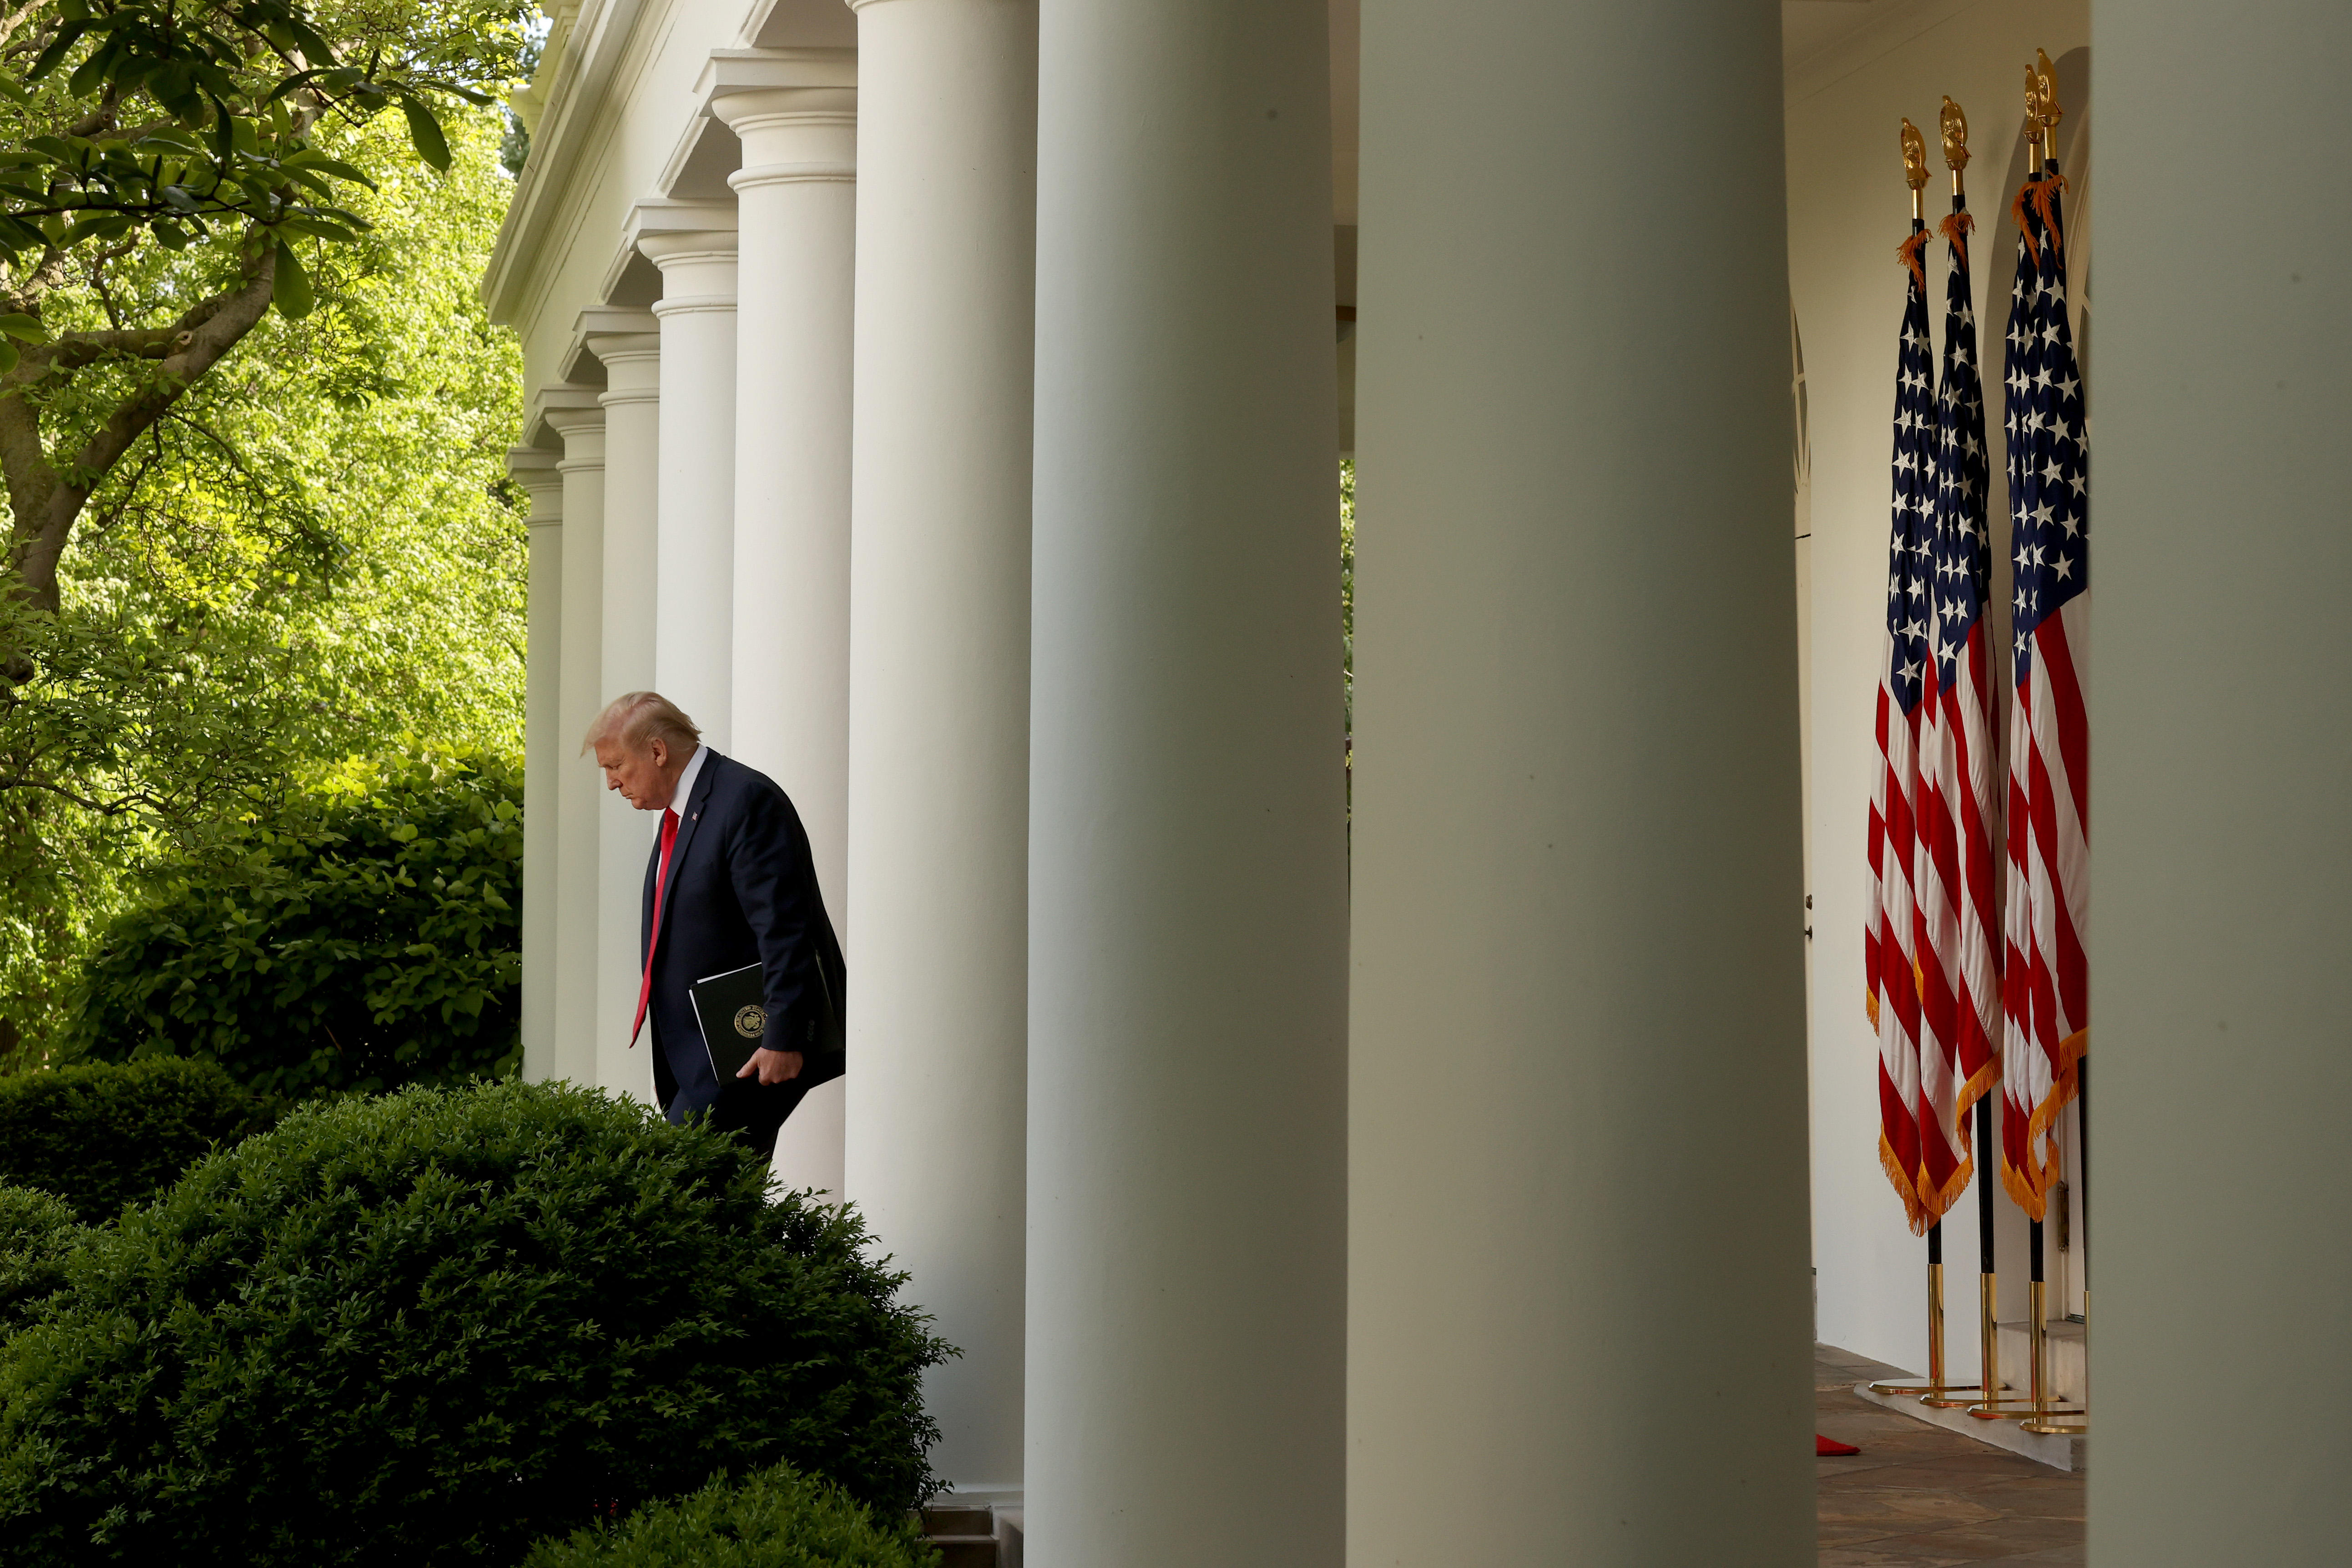 WASHINGTON, DC - APRIL 27: U.S. President Donald Trump walks out before the daily briefing of the coronavirus task force in the Rose Garden at the White House on April 27, 2020 in Washington, DC. Today's task force briefing is the first since Friday after not holding any over the weekend. (Photo by Win McNamee/Getty Images)